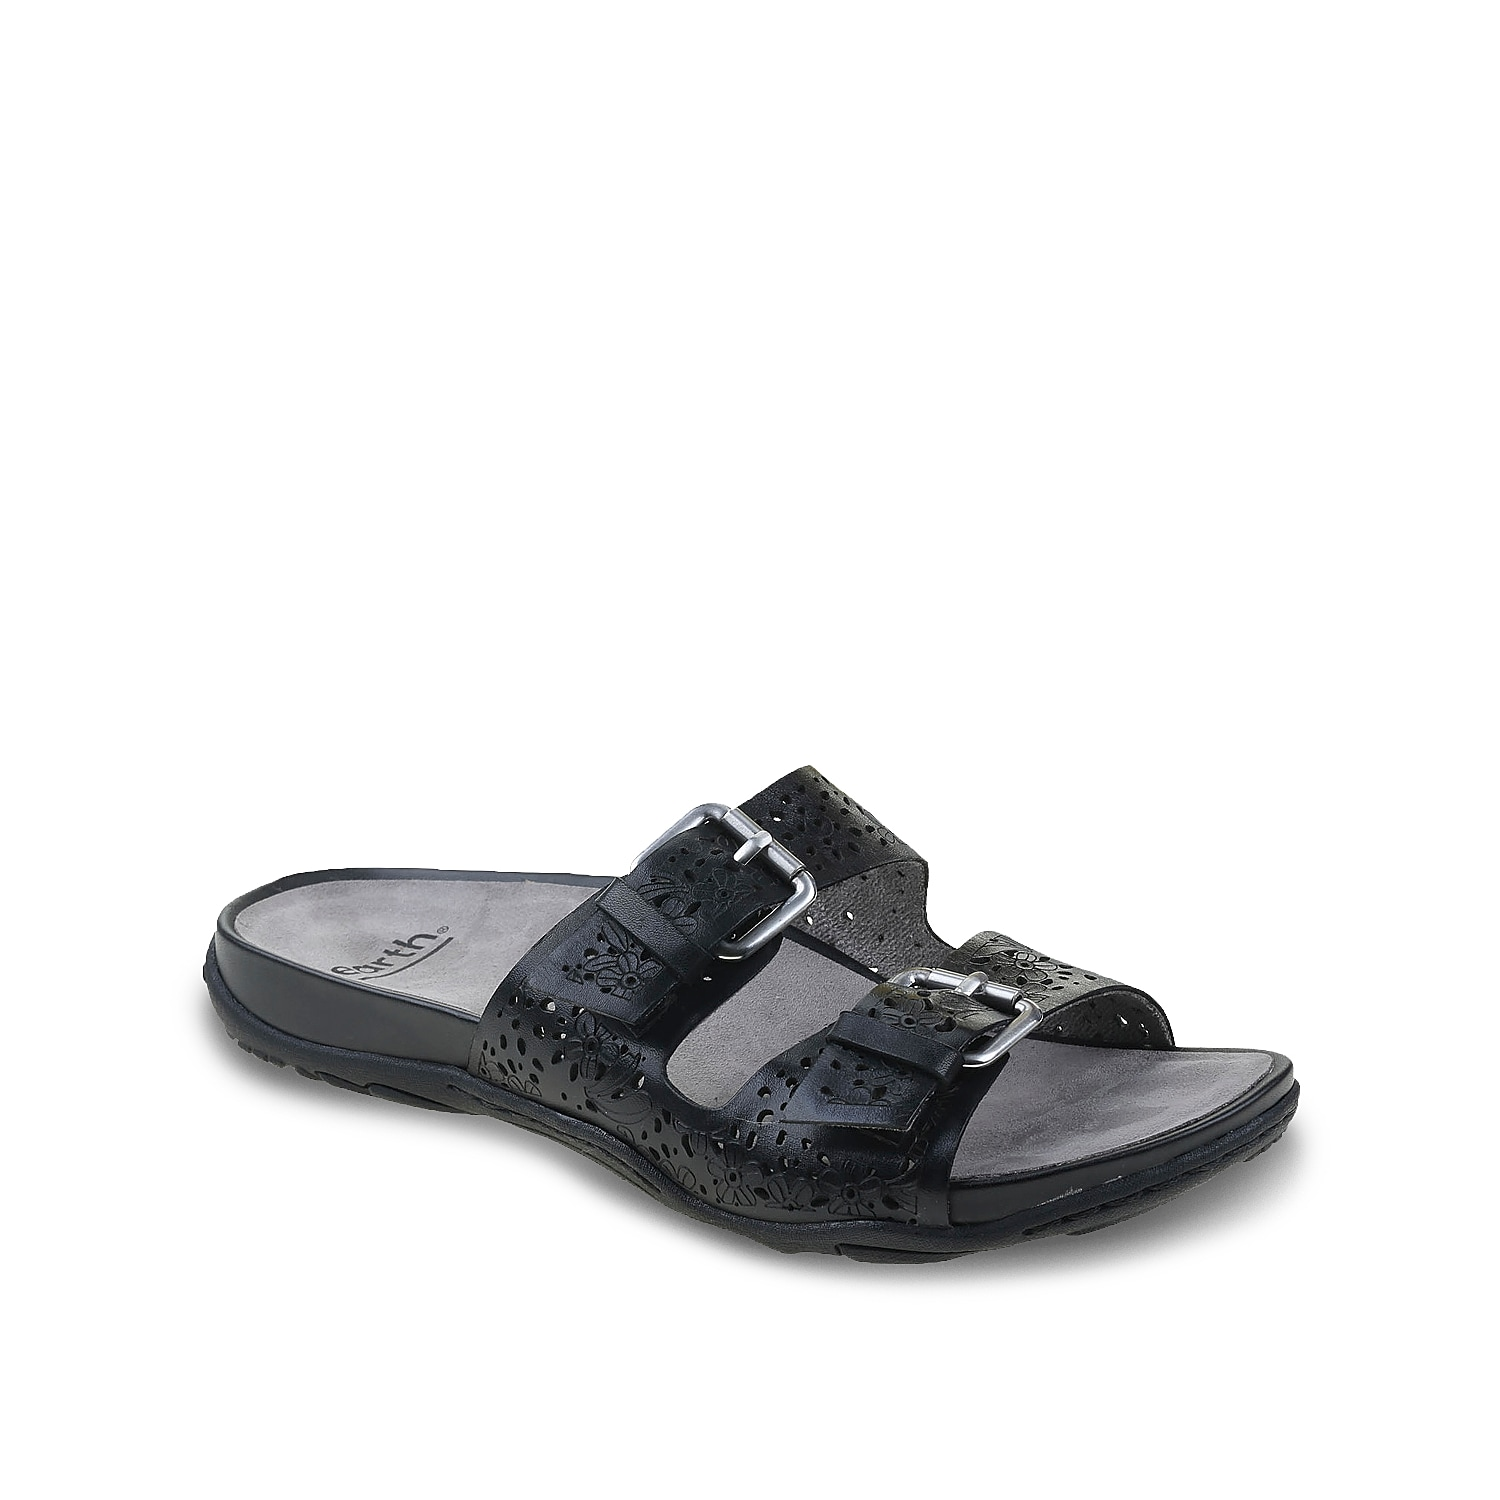 Lounge in laid-back style with the Antigua slide sandal from Earth Footwear. Designed with dual bands sporting adjustable buckles, this slip-on sandal has a padded, contoured PowerPath® footbed to pamper your feet all-day long.